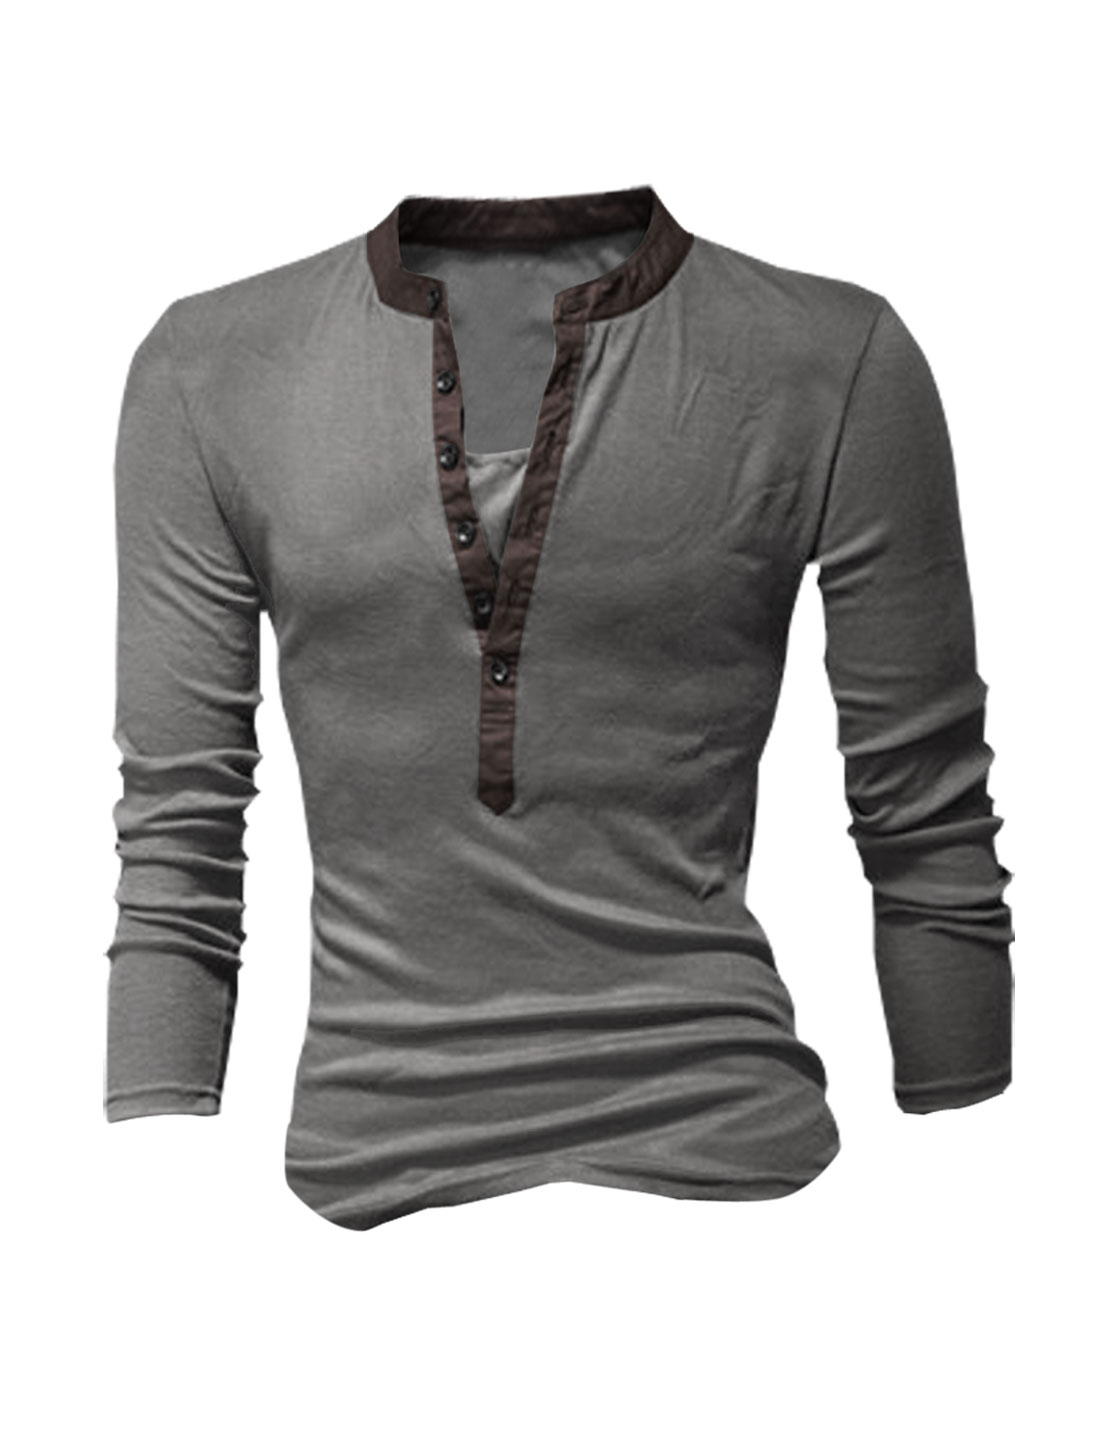 Mens Dark Gray Slim Fit Stretchy Split Neck Design Shirt Tops M